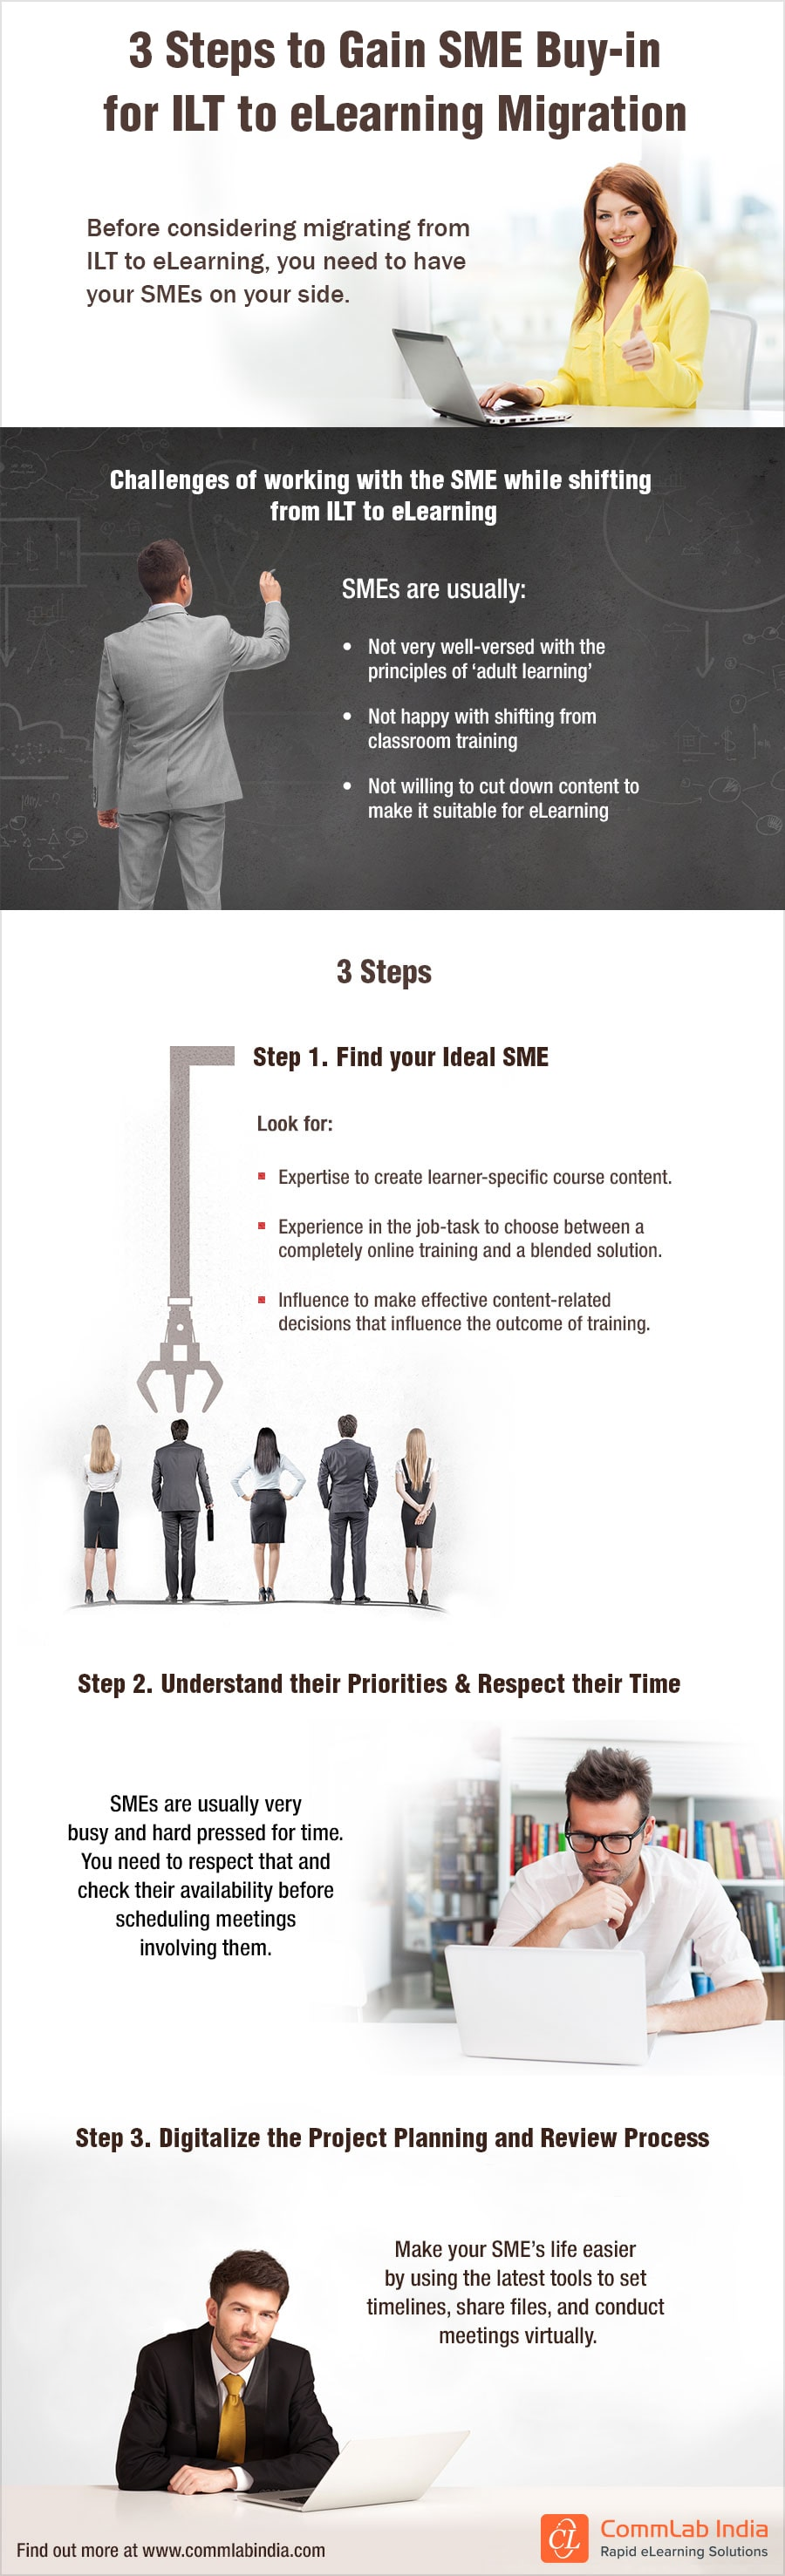 ILT to eLearning Migration: 3 Steps to Gain SME Buy-in